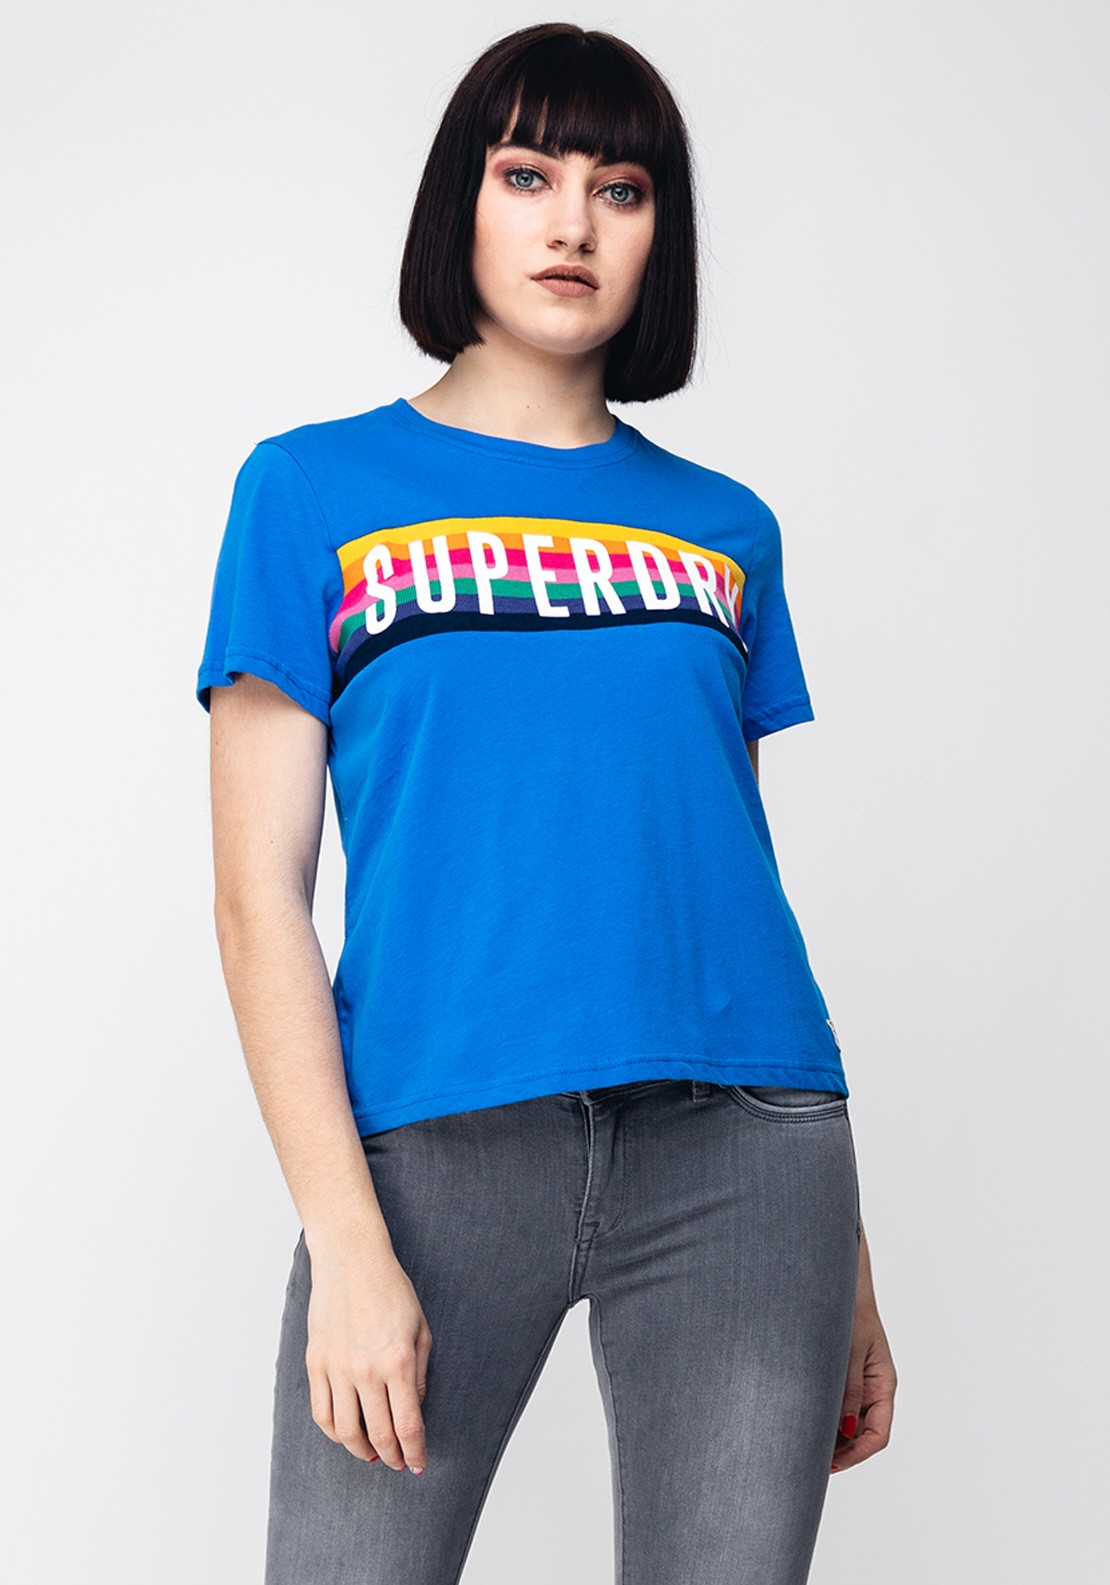 764db25bd Superdry Womens Rainbow Graphic T-Shirt, Blue. Be the first to review this  product